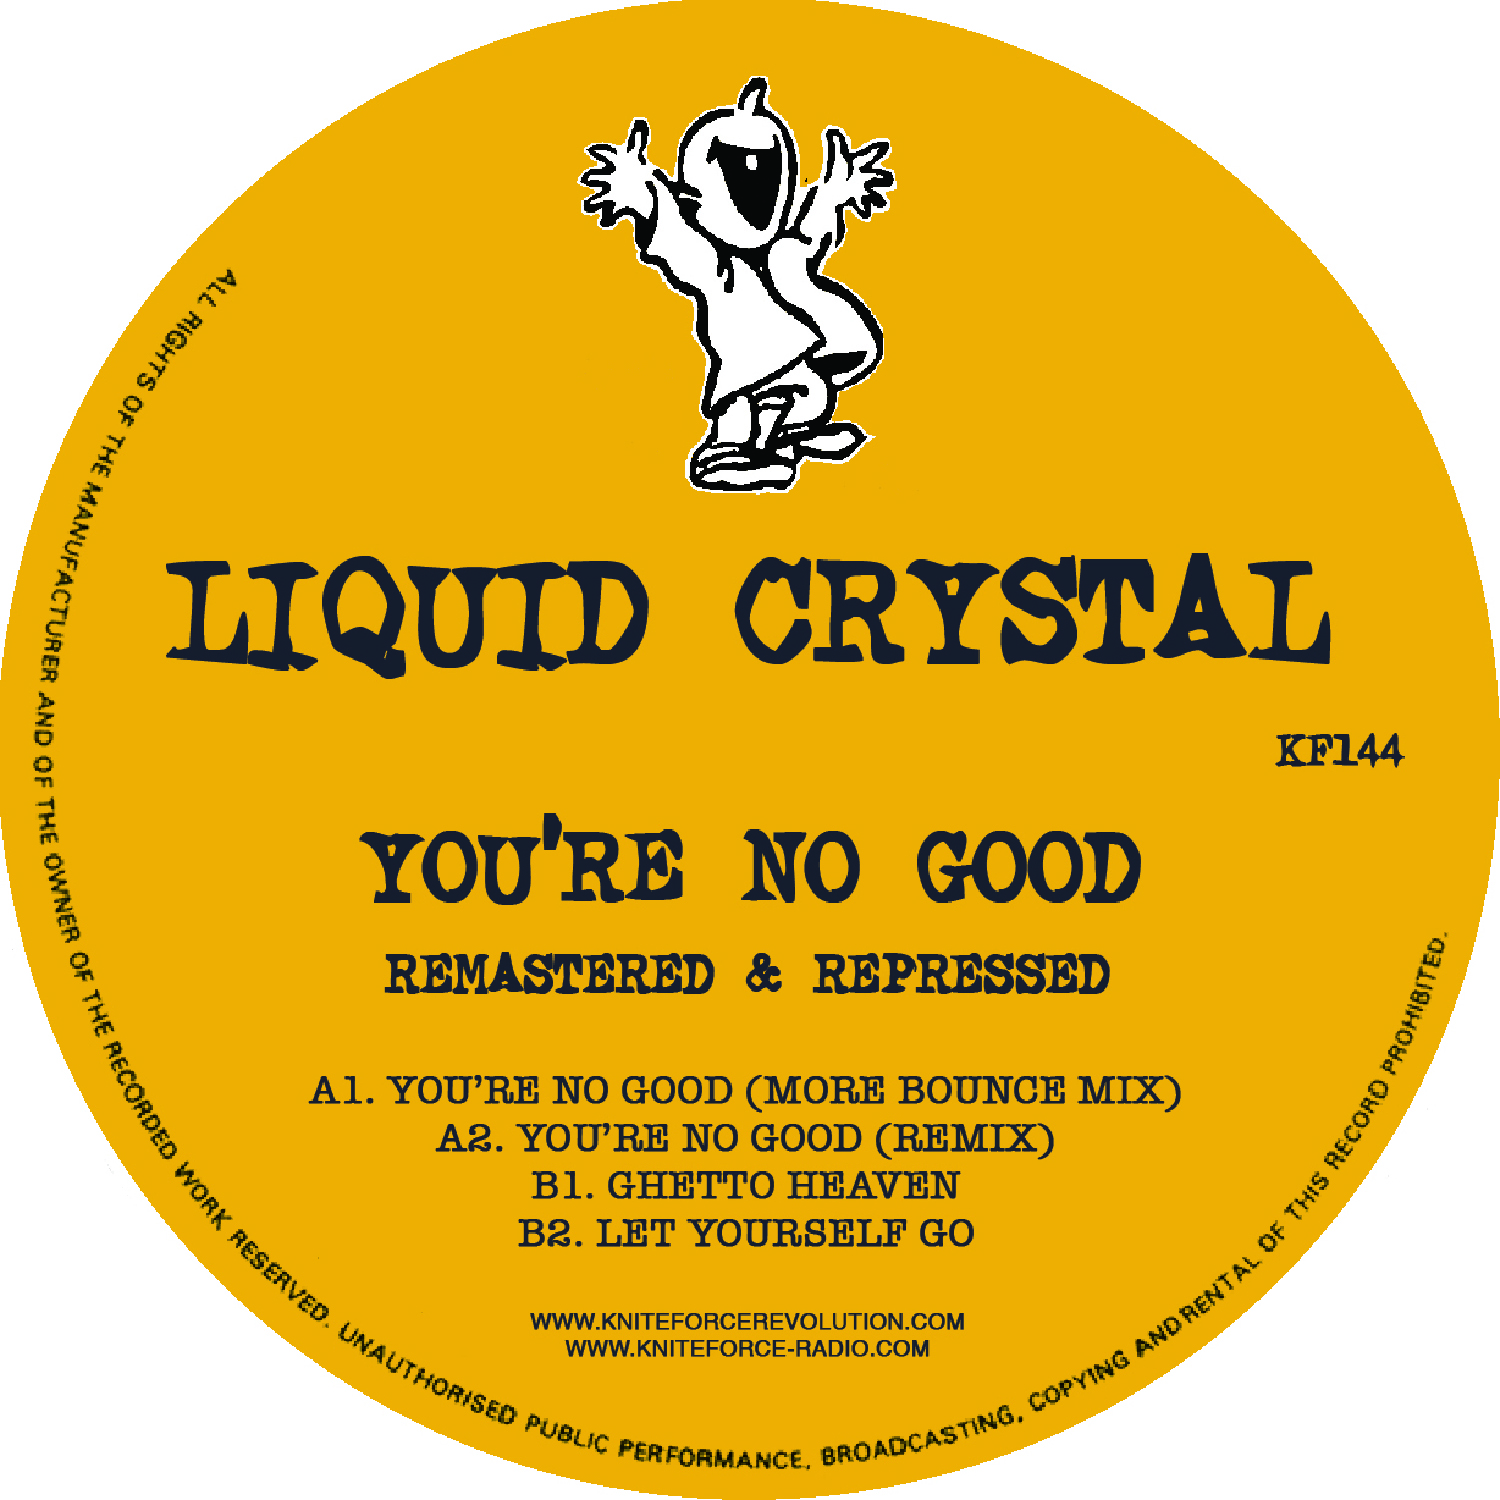 "[KF144] Liquid Crystal - You're No Good EP (12"" Vinyl + Digital)"